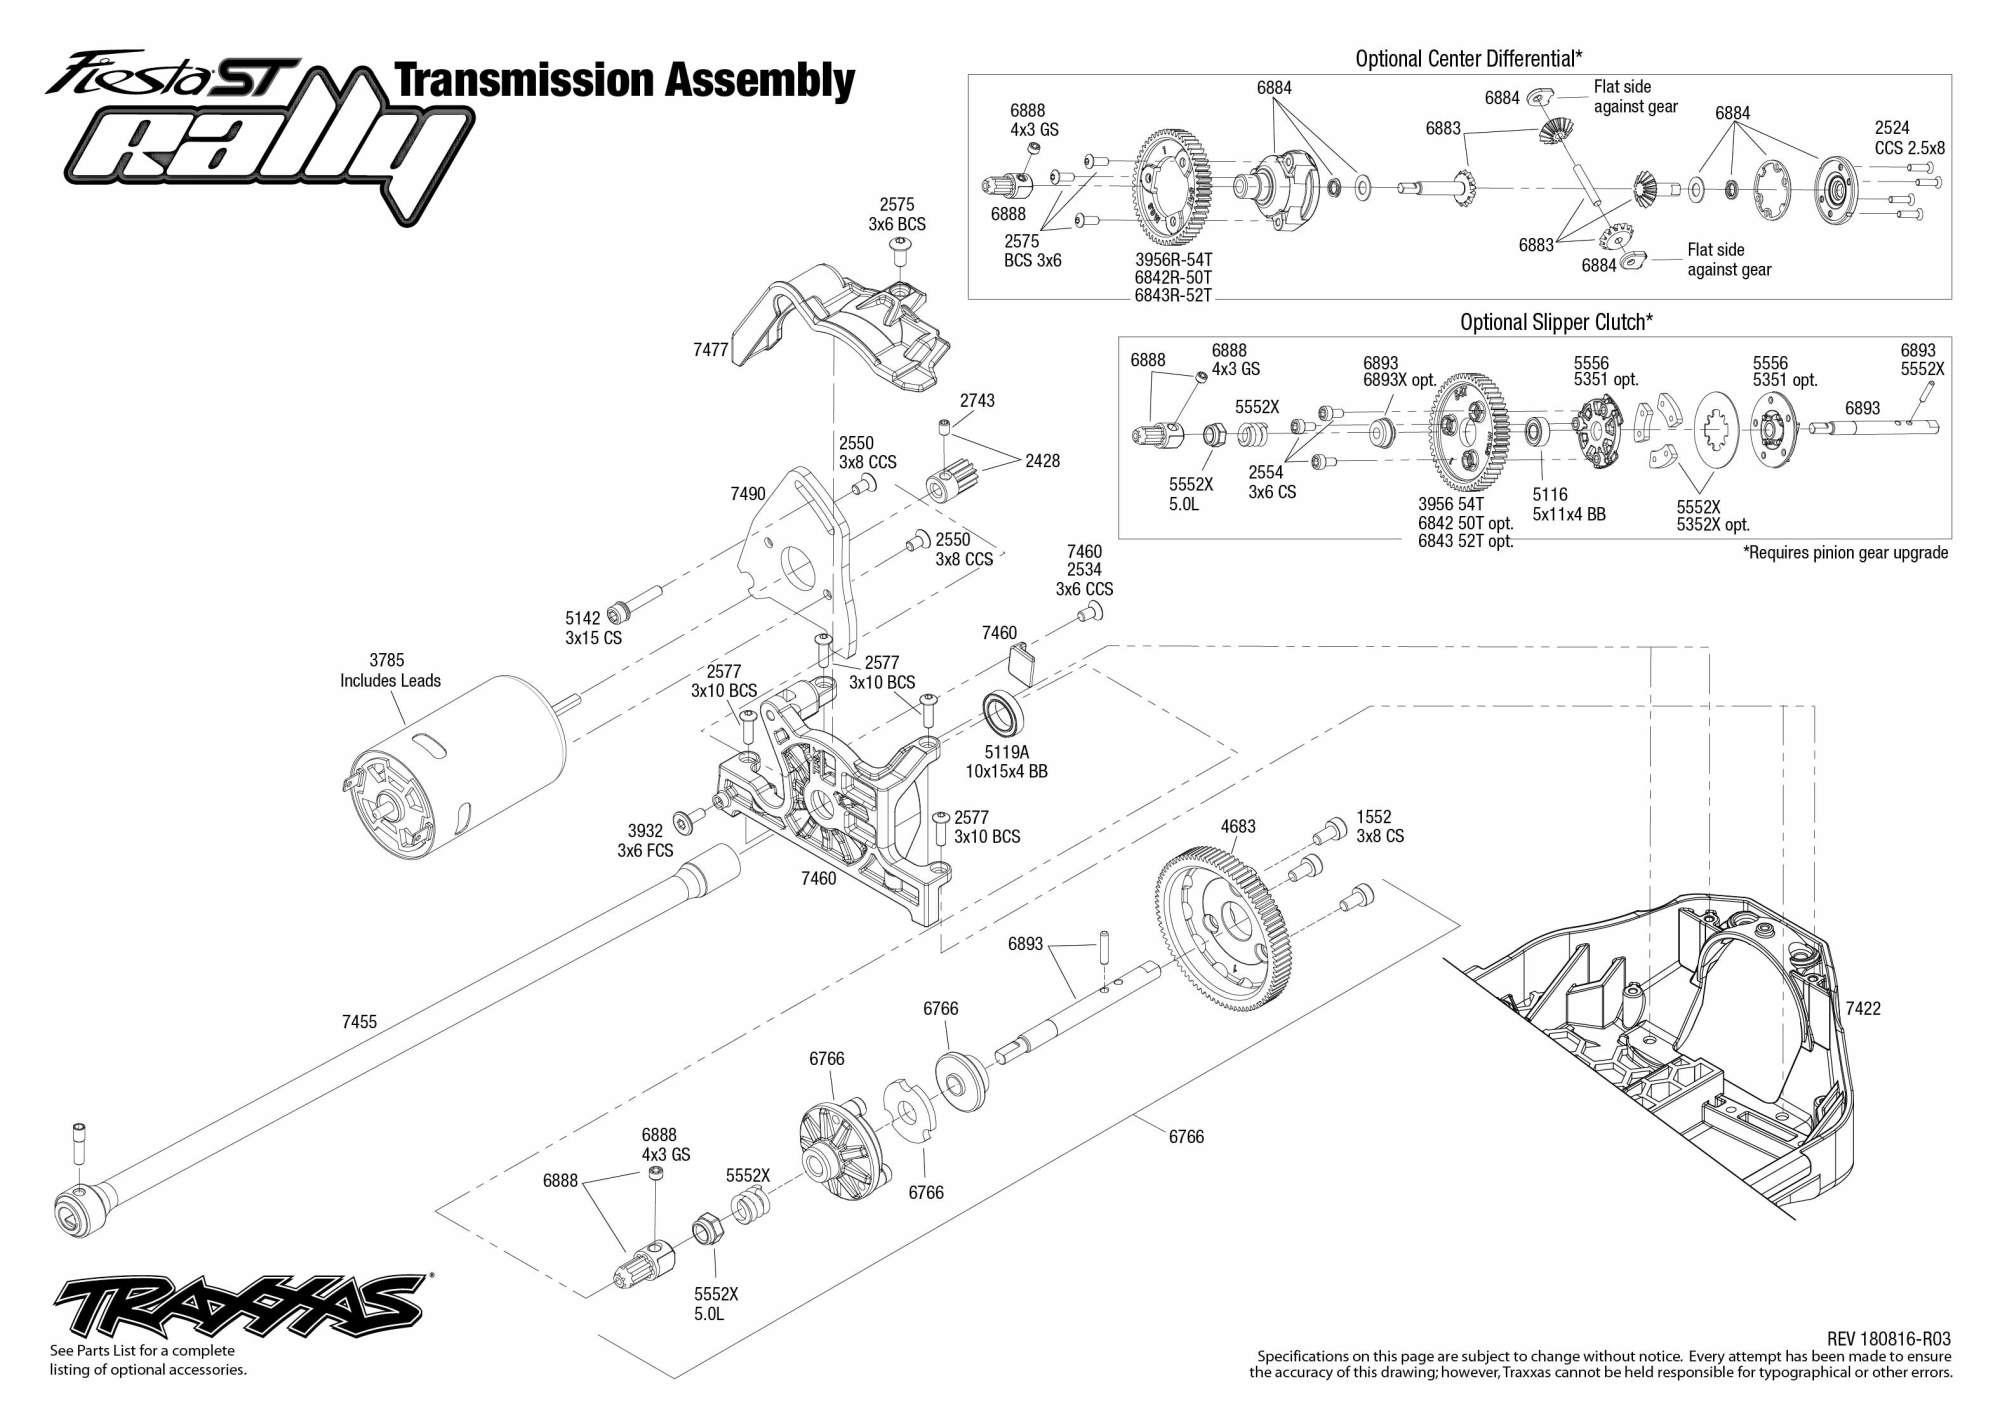 hight resolution of ford fiesta st rally 74054 6 transmission assembly exploded view ford fiesta transmission diagram